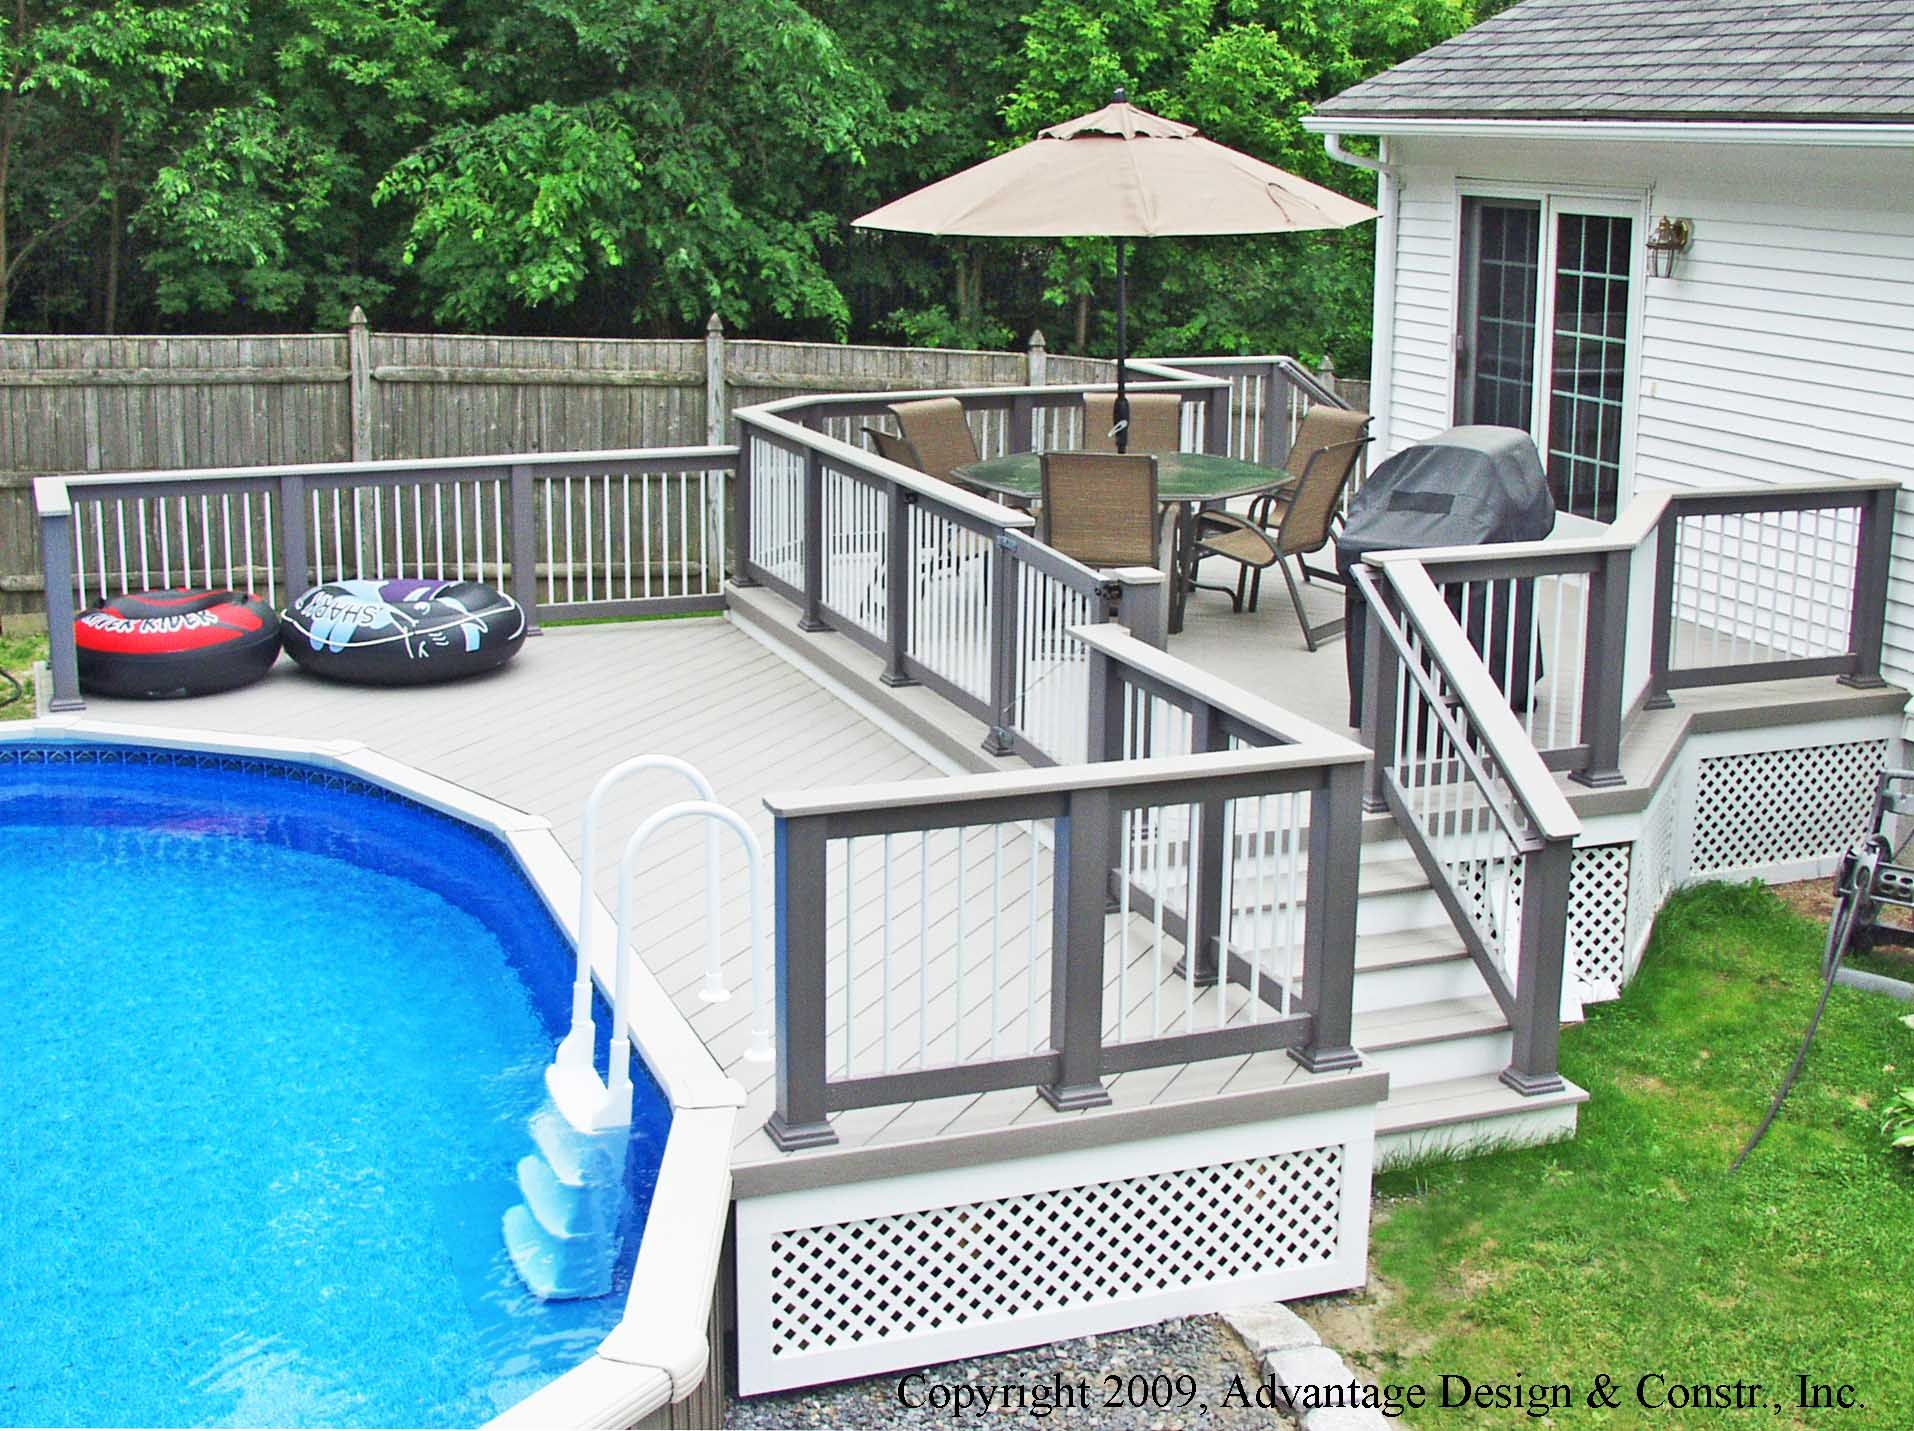 Wood pool deck designs home and interior design pool deck wood pool deck designs home and interior design pool deck baanklon Images